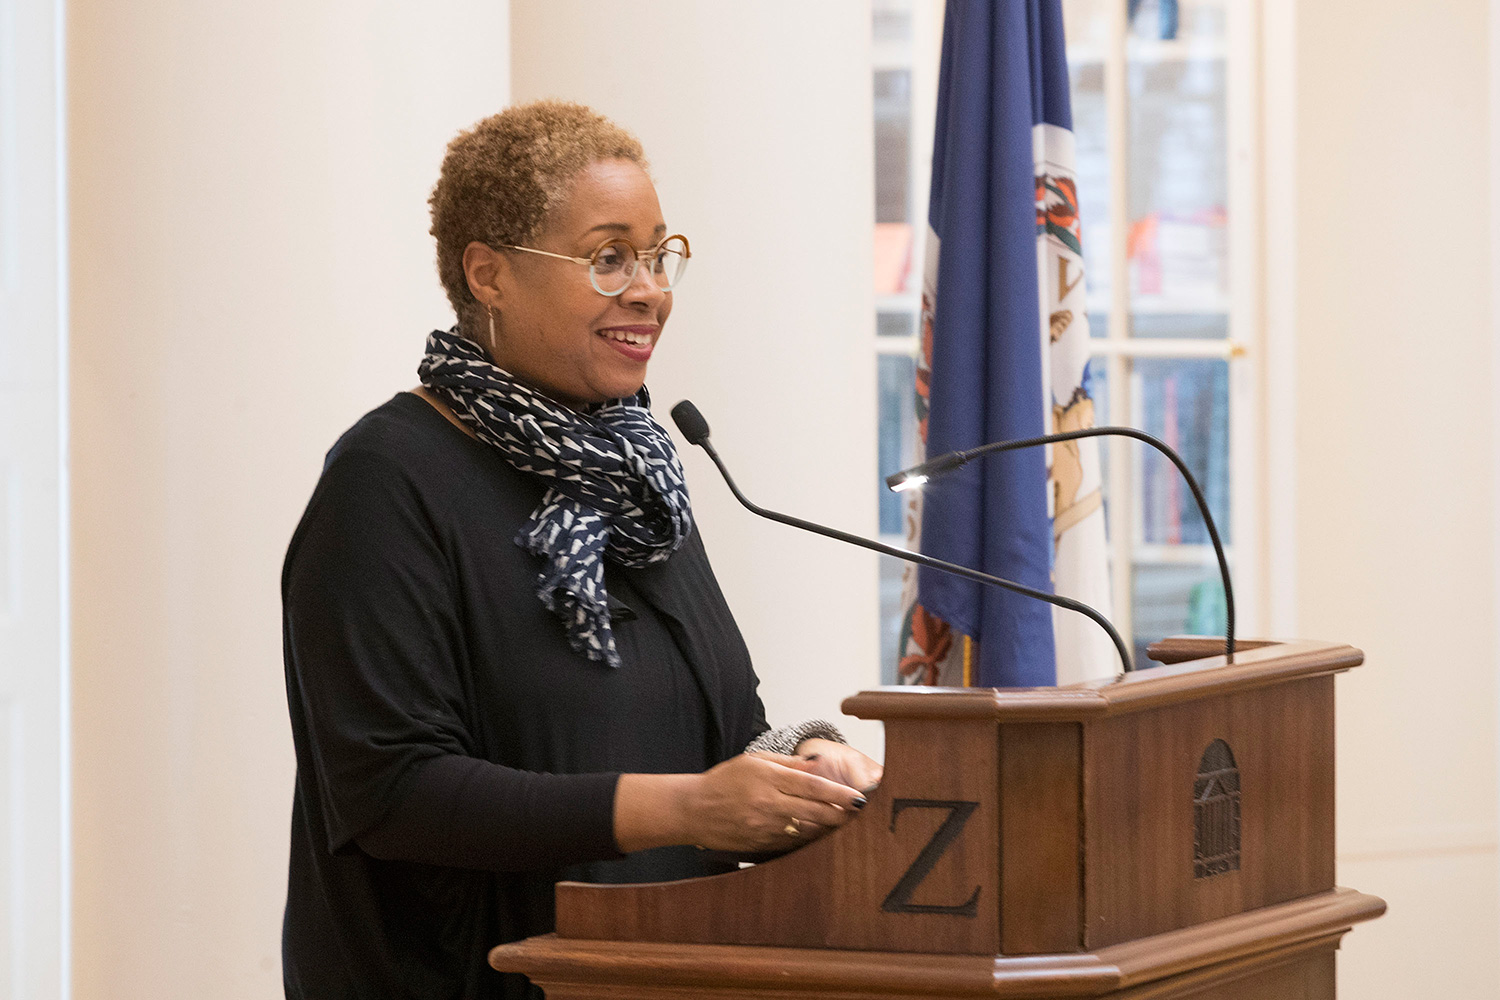 """It's been an extraordinary experience to be involved in this project,"" said UVA alumna Mabel Wilson, a member of the memorial design team and a professor of architecture at Columbia University."